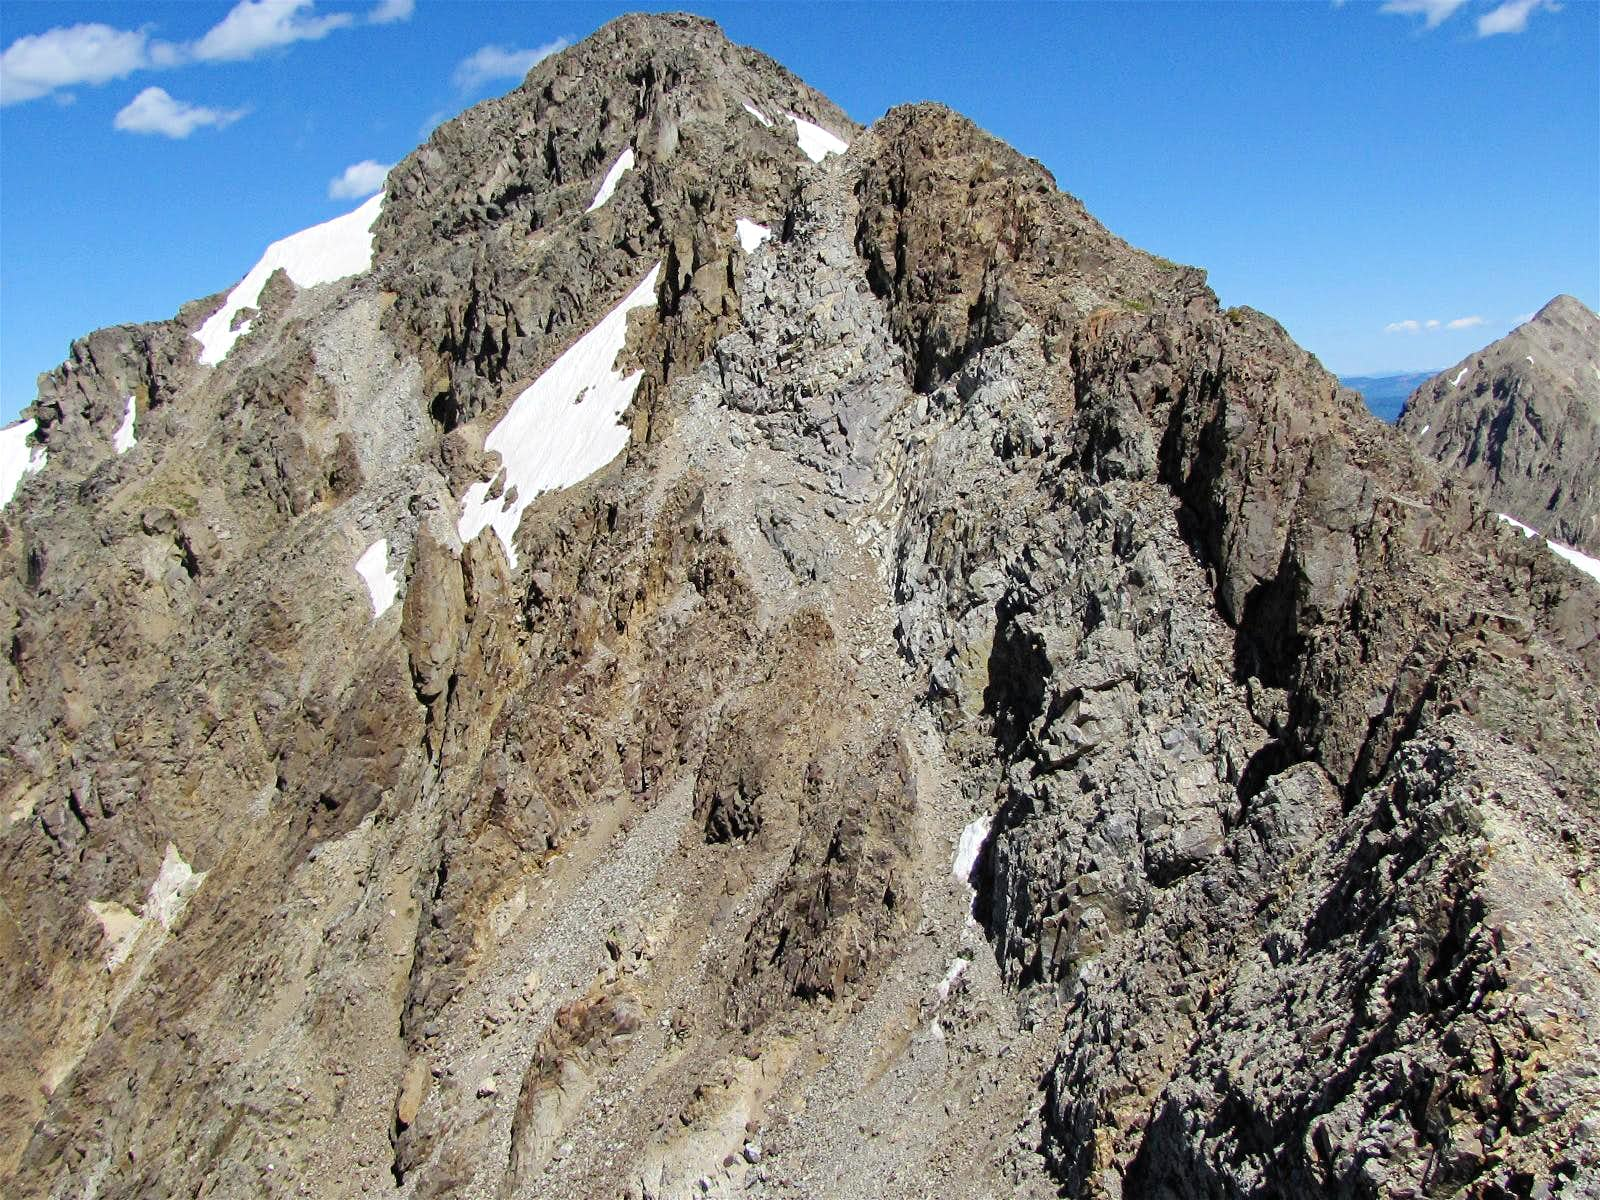 Tellurium, A Rugged Peak Whose Summit I Could Not Reach